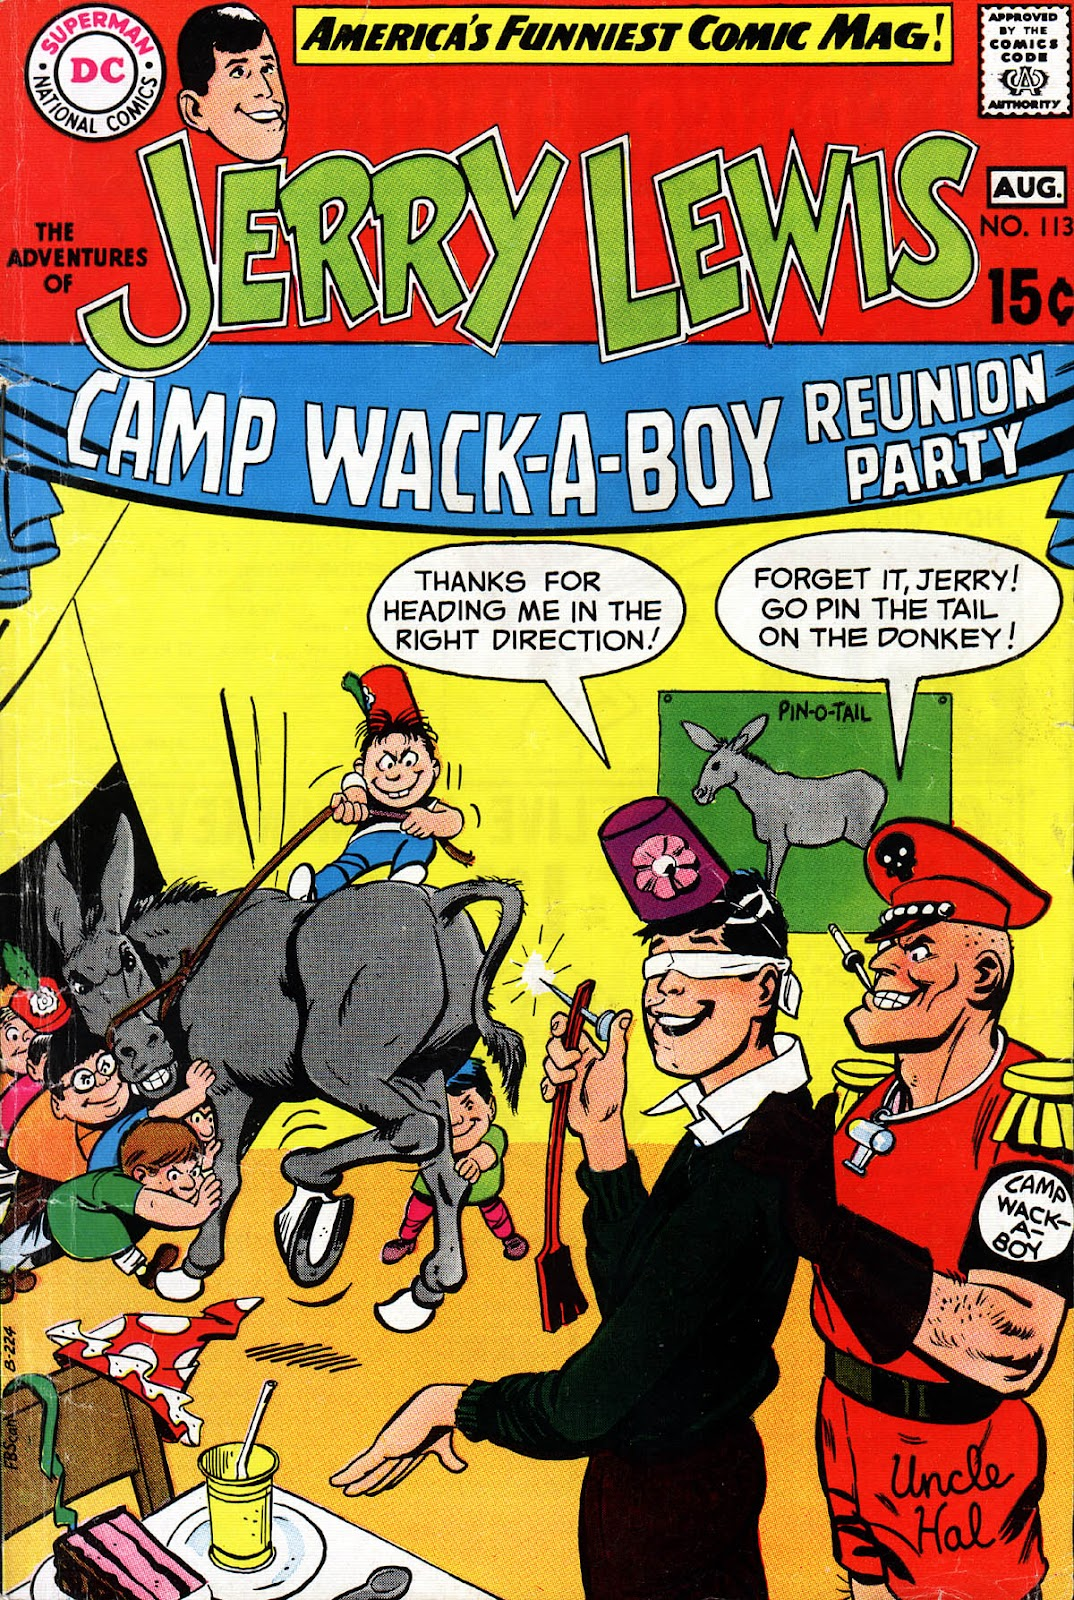 The Adventures of Jerry Lewis issue 113 - Page 1